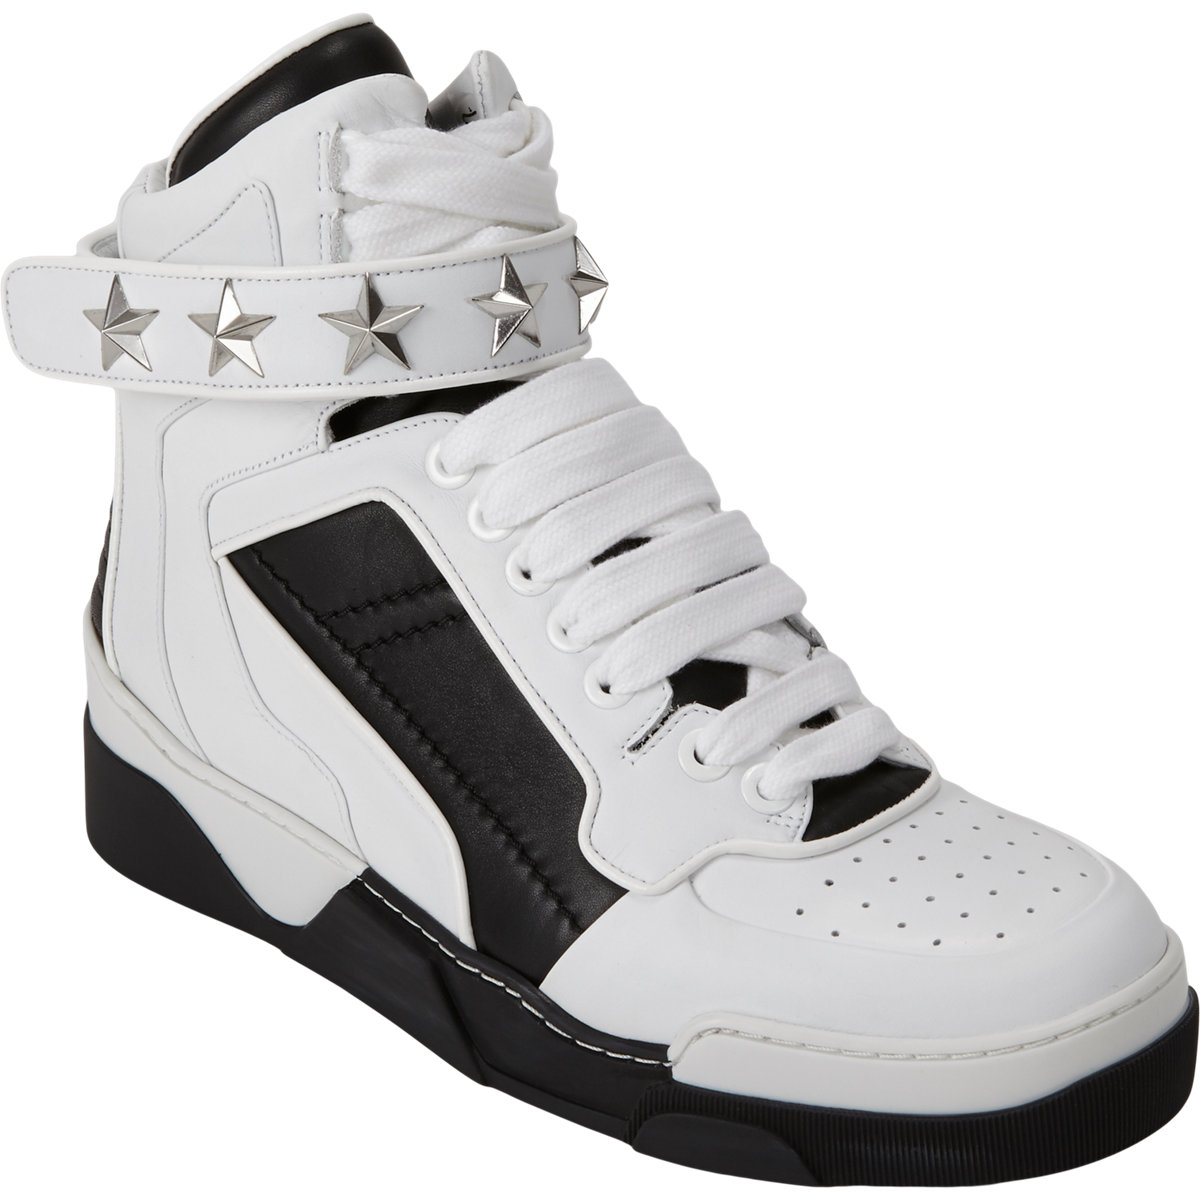 Givenchy High-top Star Ankle-strap Sneakers at Barneys.com